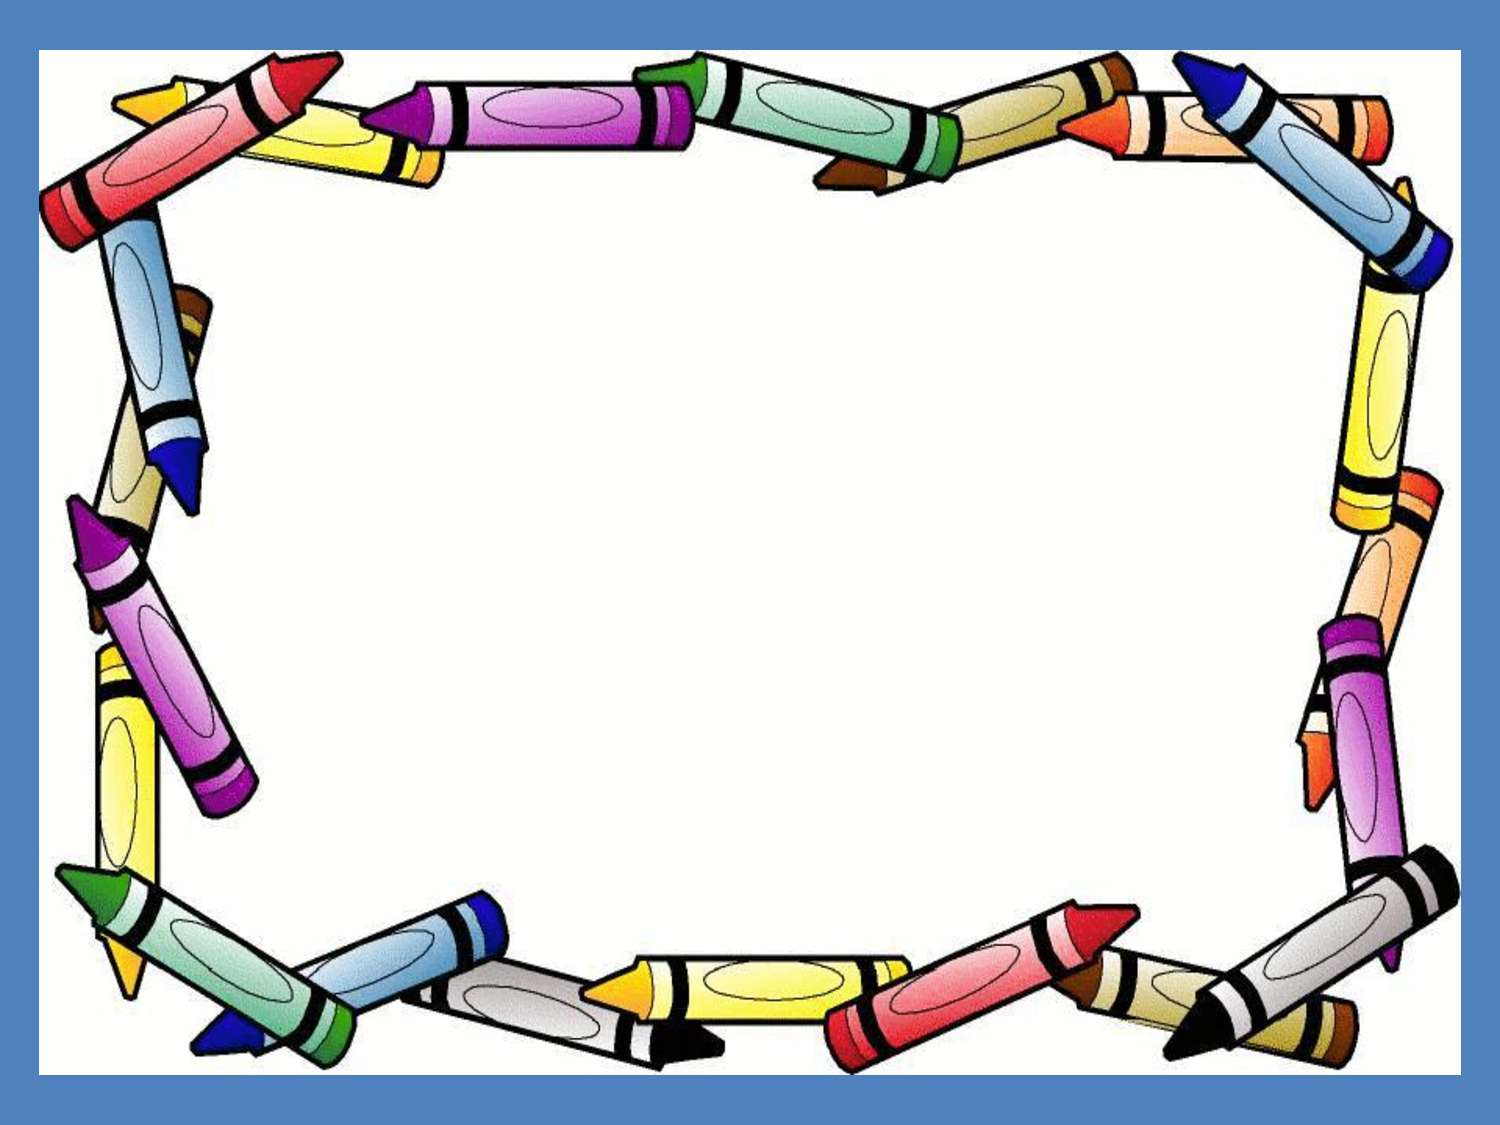 Crayon clipart boarder Free Crayon Clipart Clipart Images